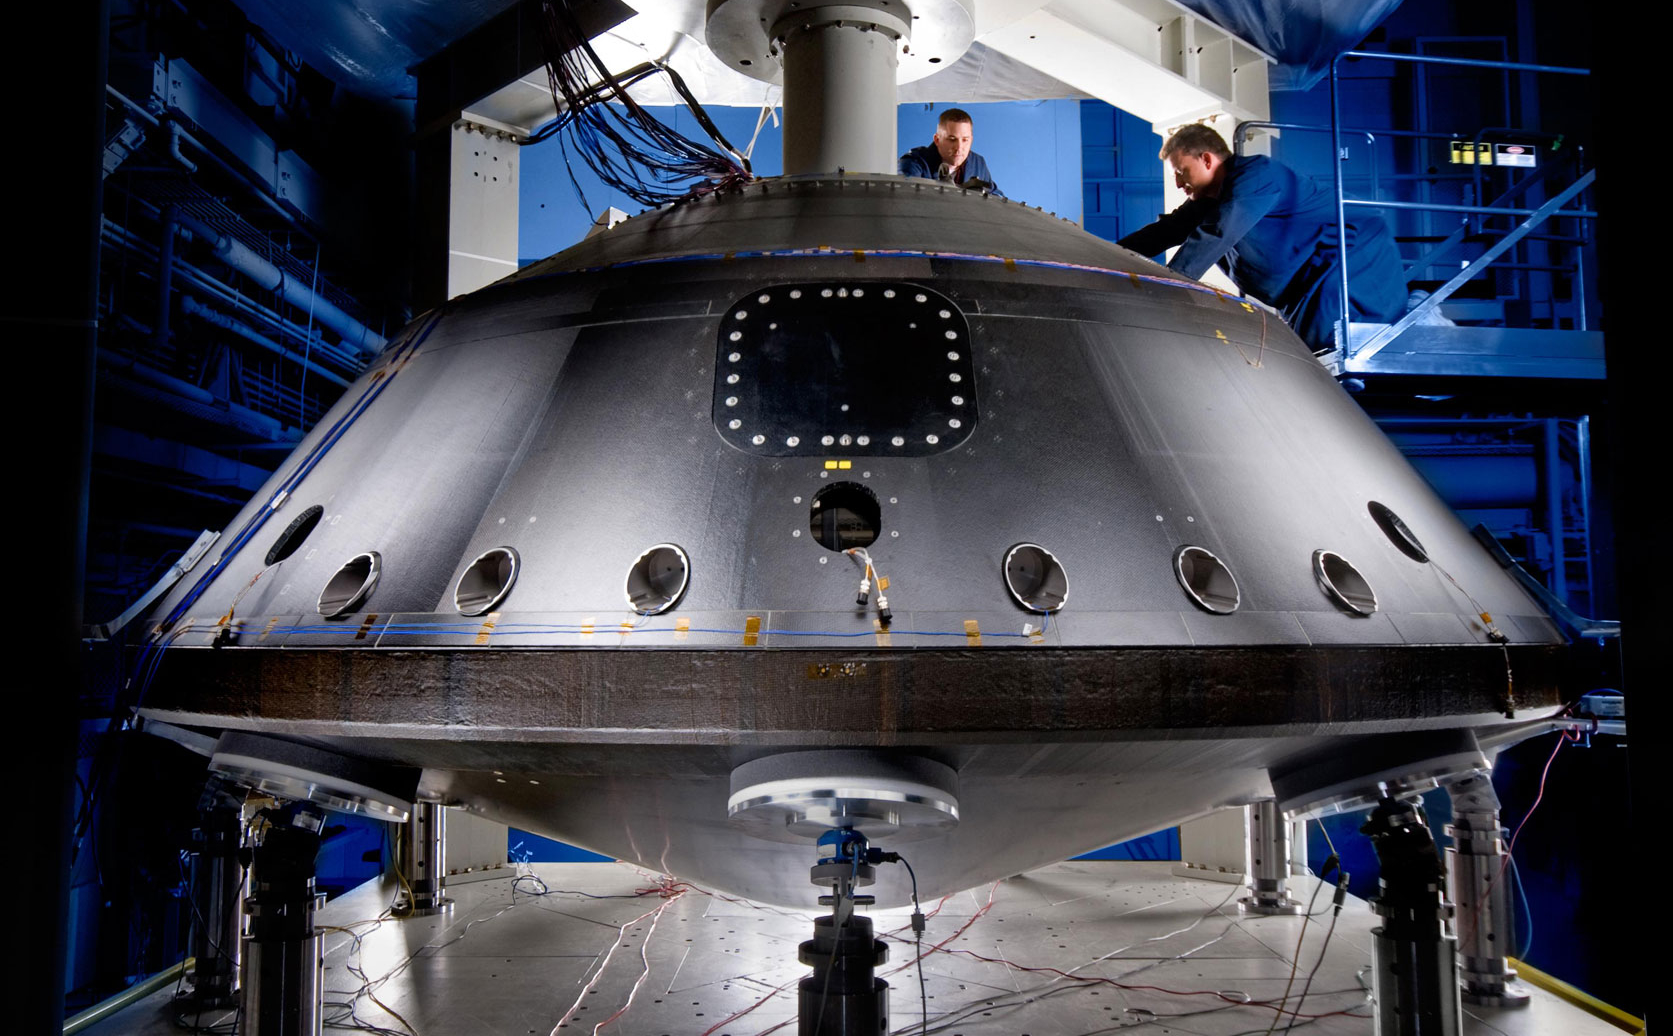 This image from July 2008 shows the aeroshell for NASA's Mars Science Laboratory while it was being worked on by spacecraft technicians at Lockheed Martin Space Systems Company near Denver.